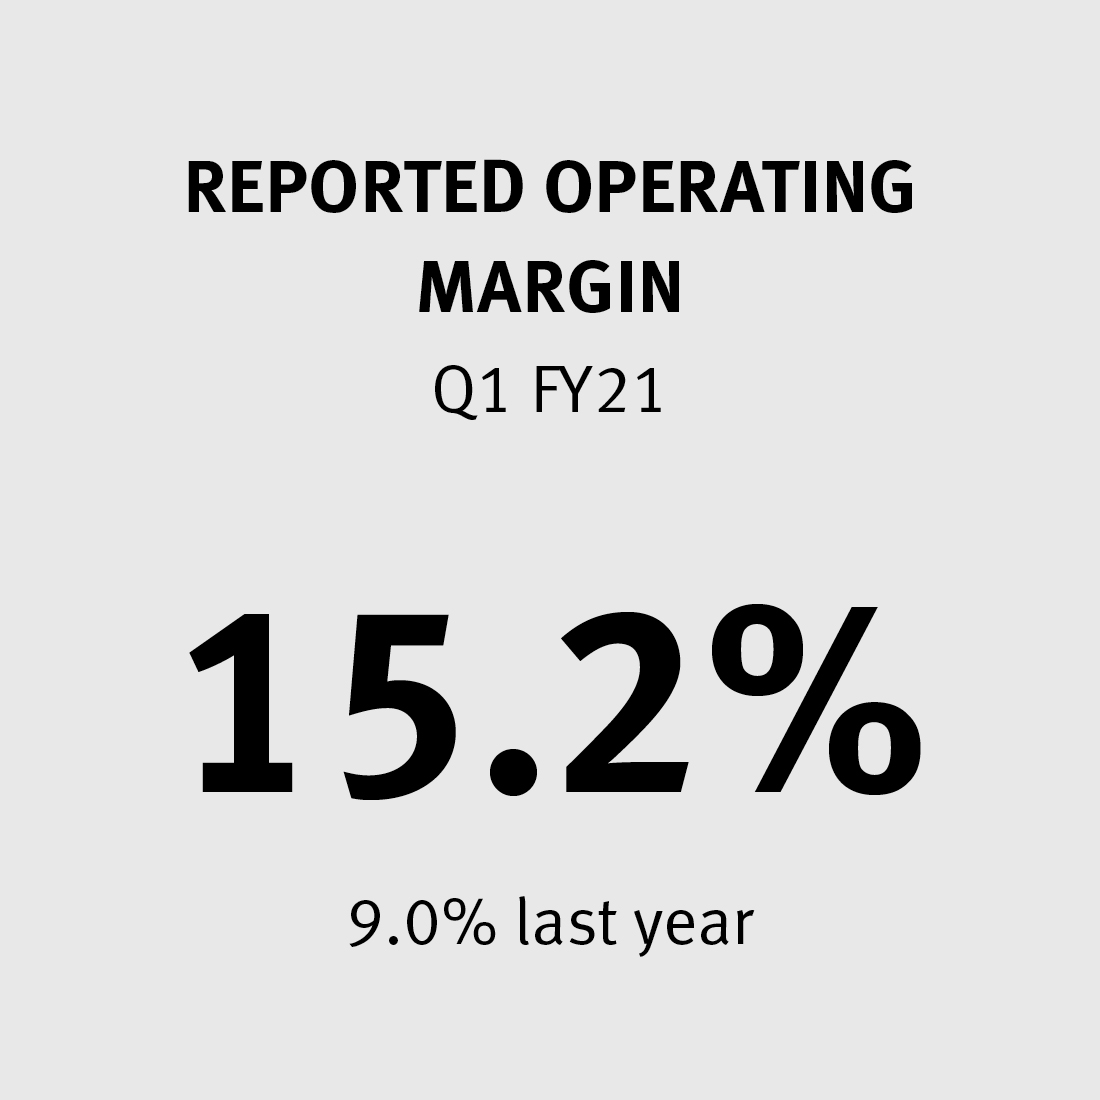 Reported Operating Margin 15.2% (9.0% last year)